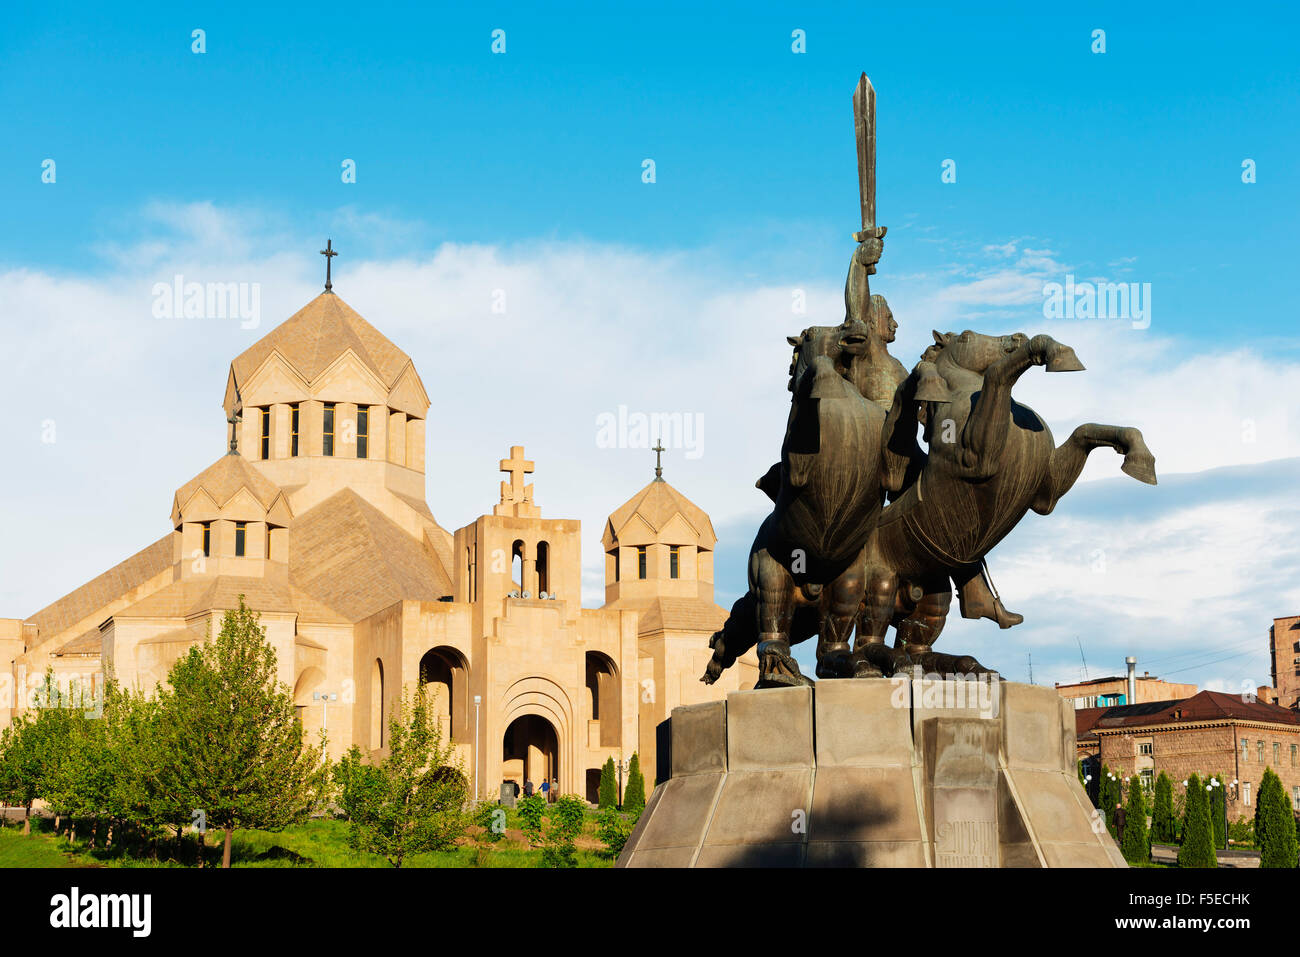 Statue of St. Grigor at St. Gregory the Illuminator Cathedral, Yerevan, Armenia, Caucasus, Central Asia, Asia - Stock Image